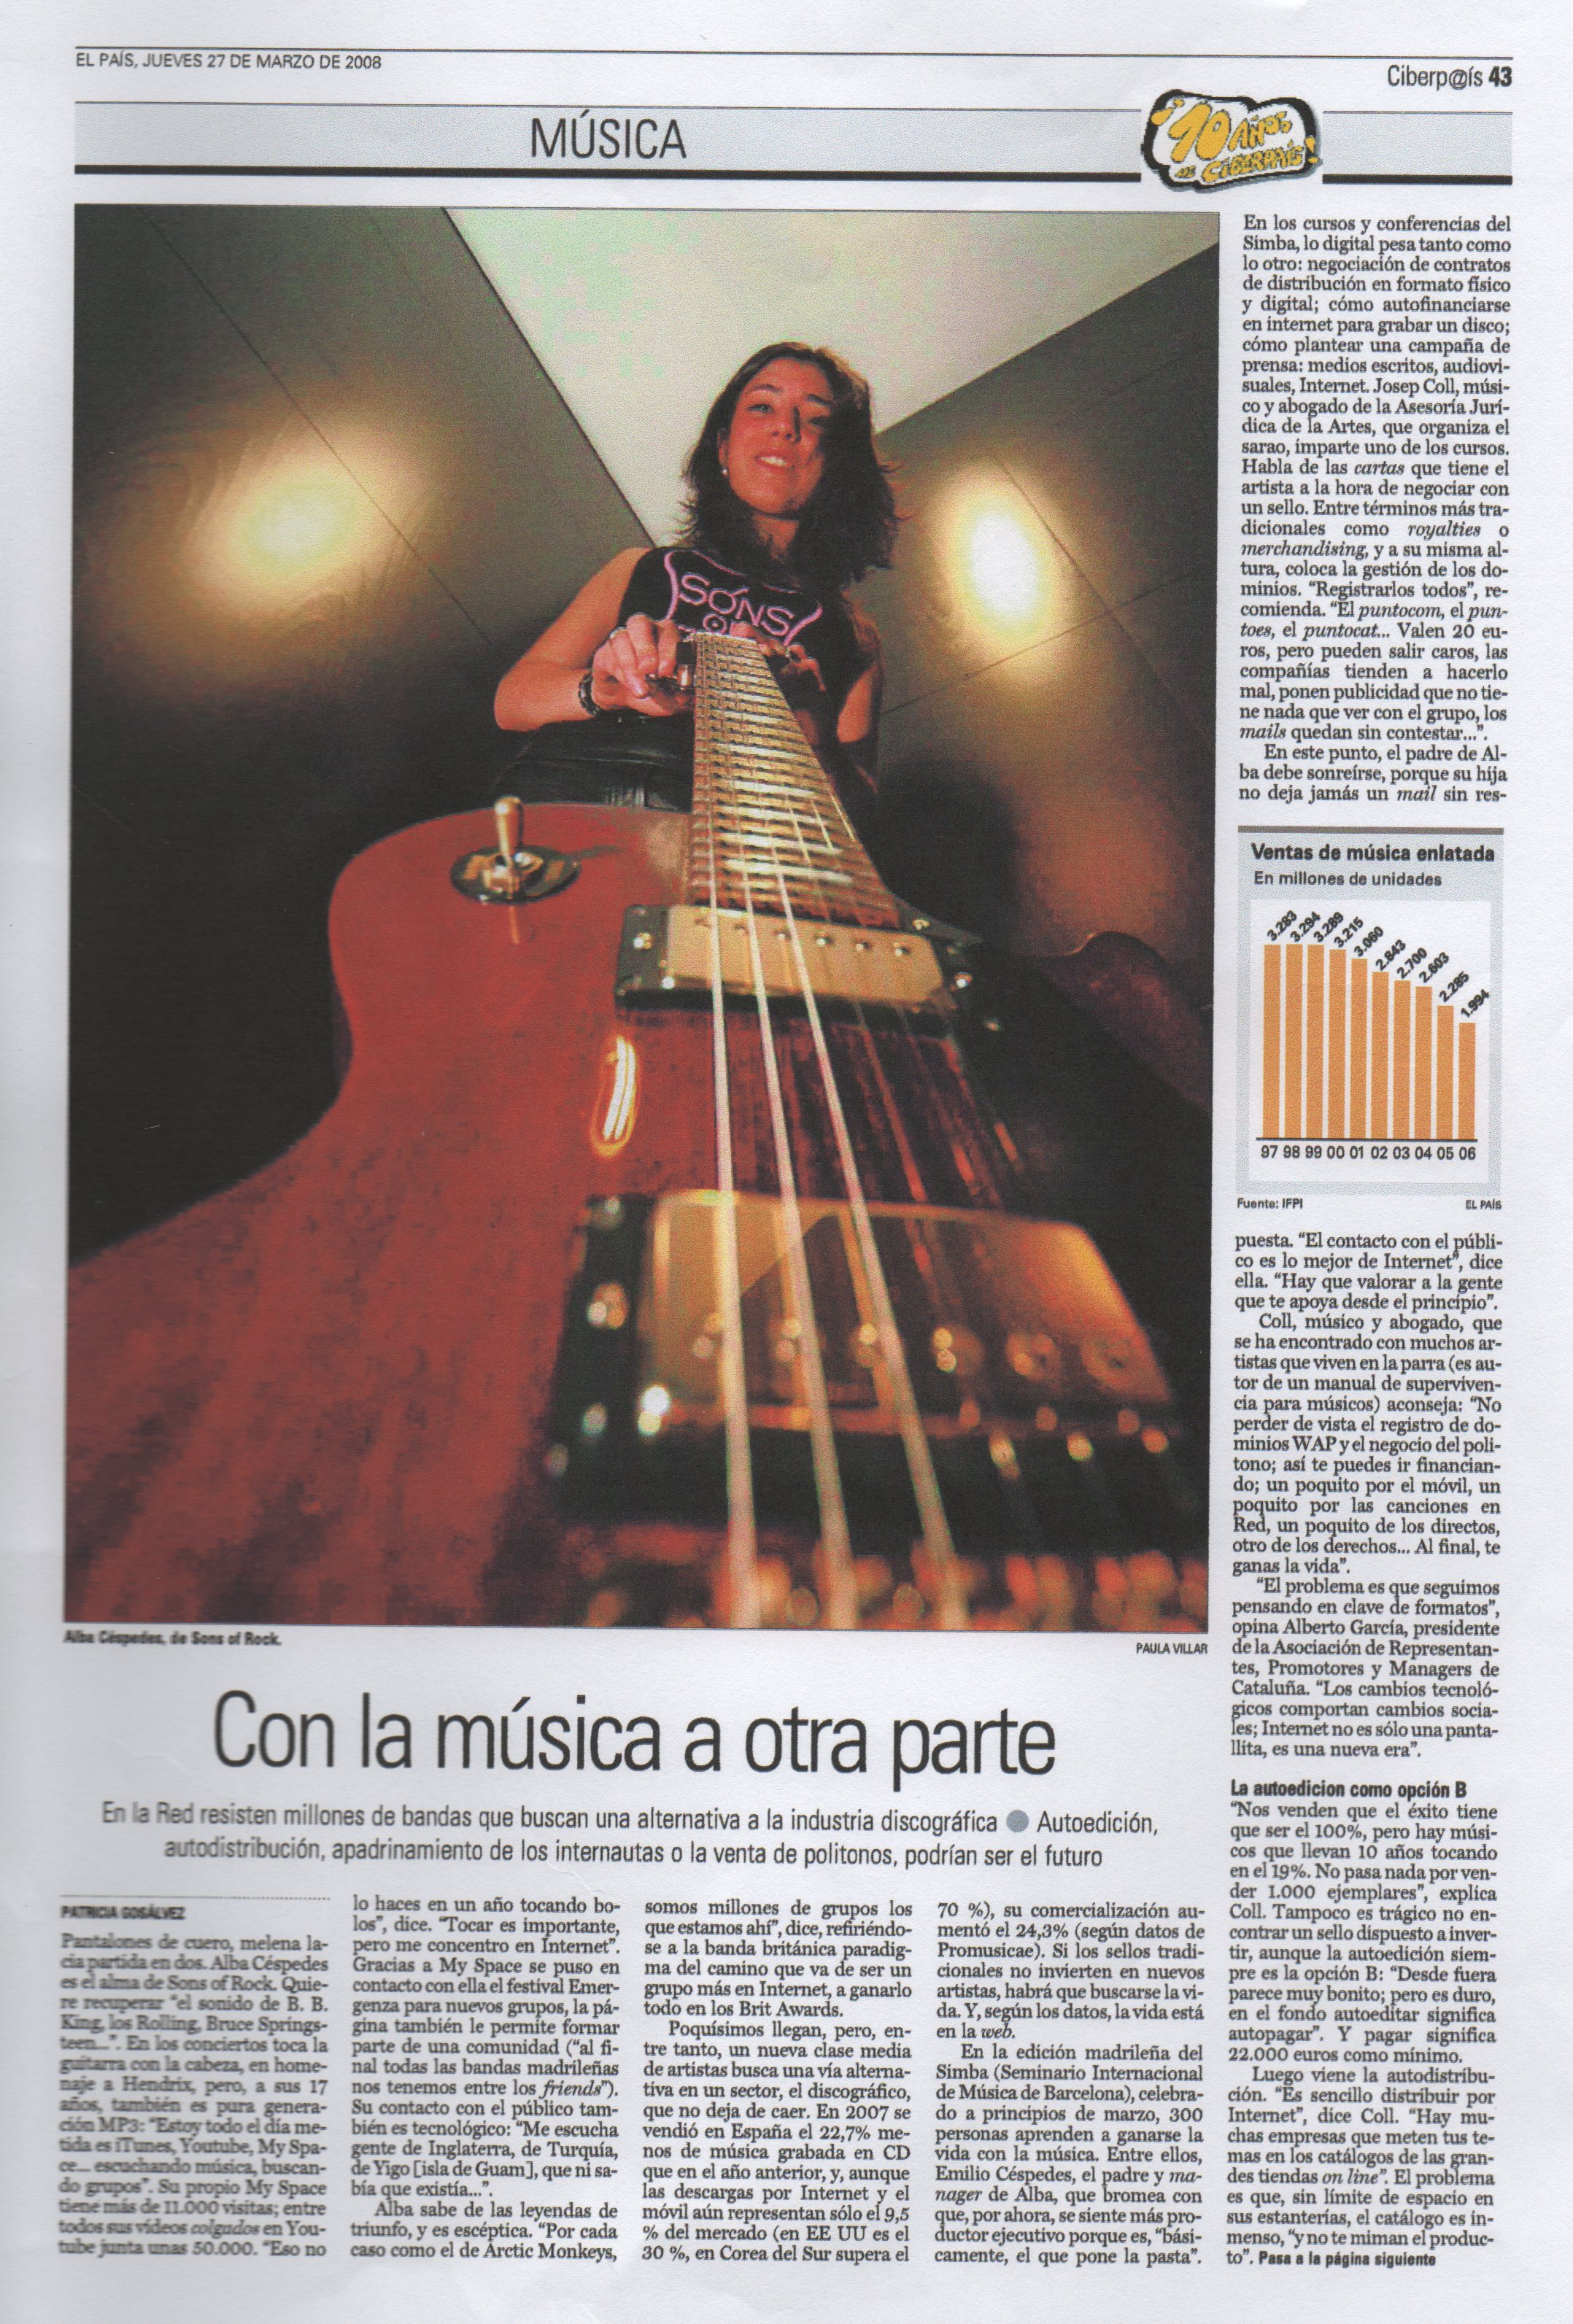 Feature in El País